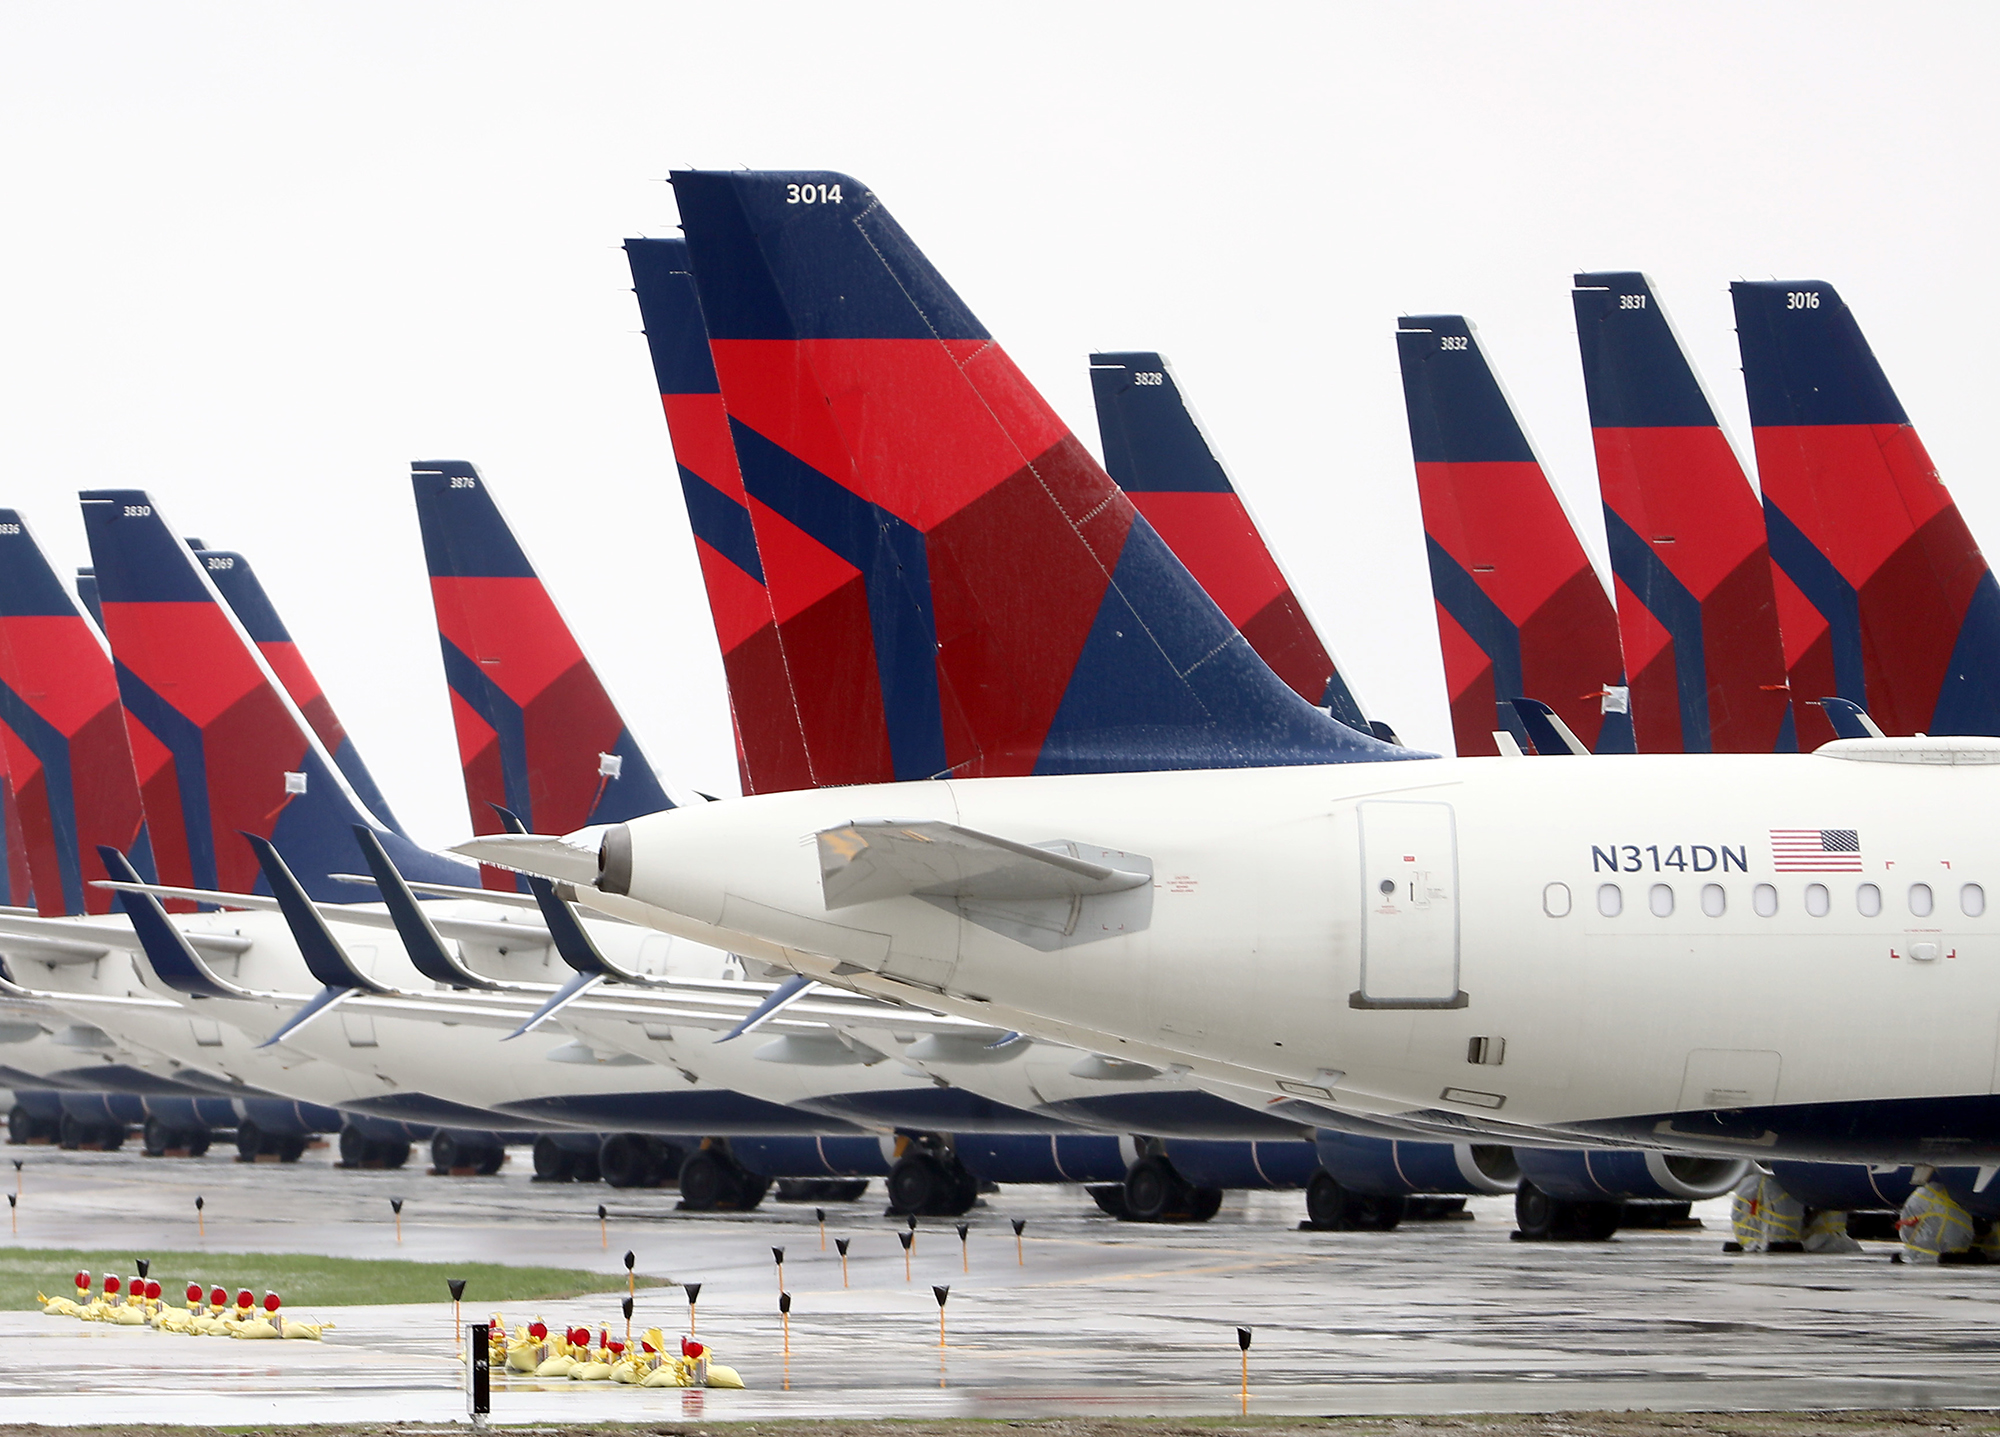 Picture of Delta signs on plane tails